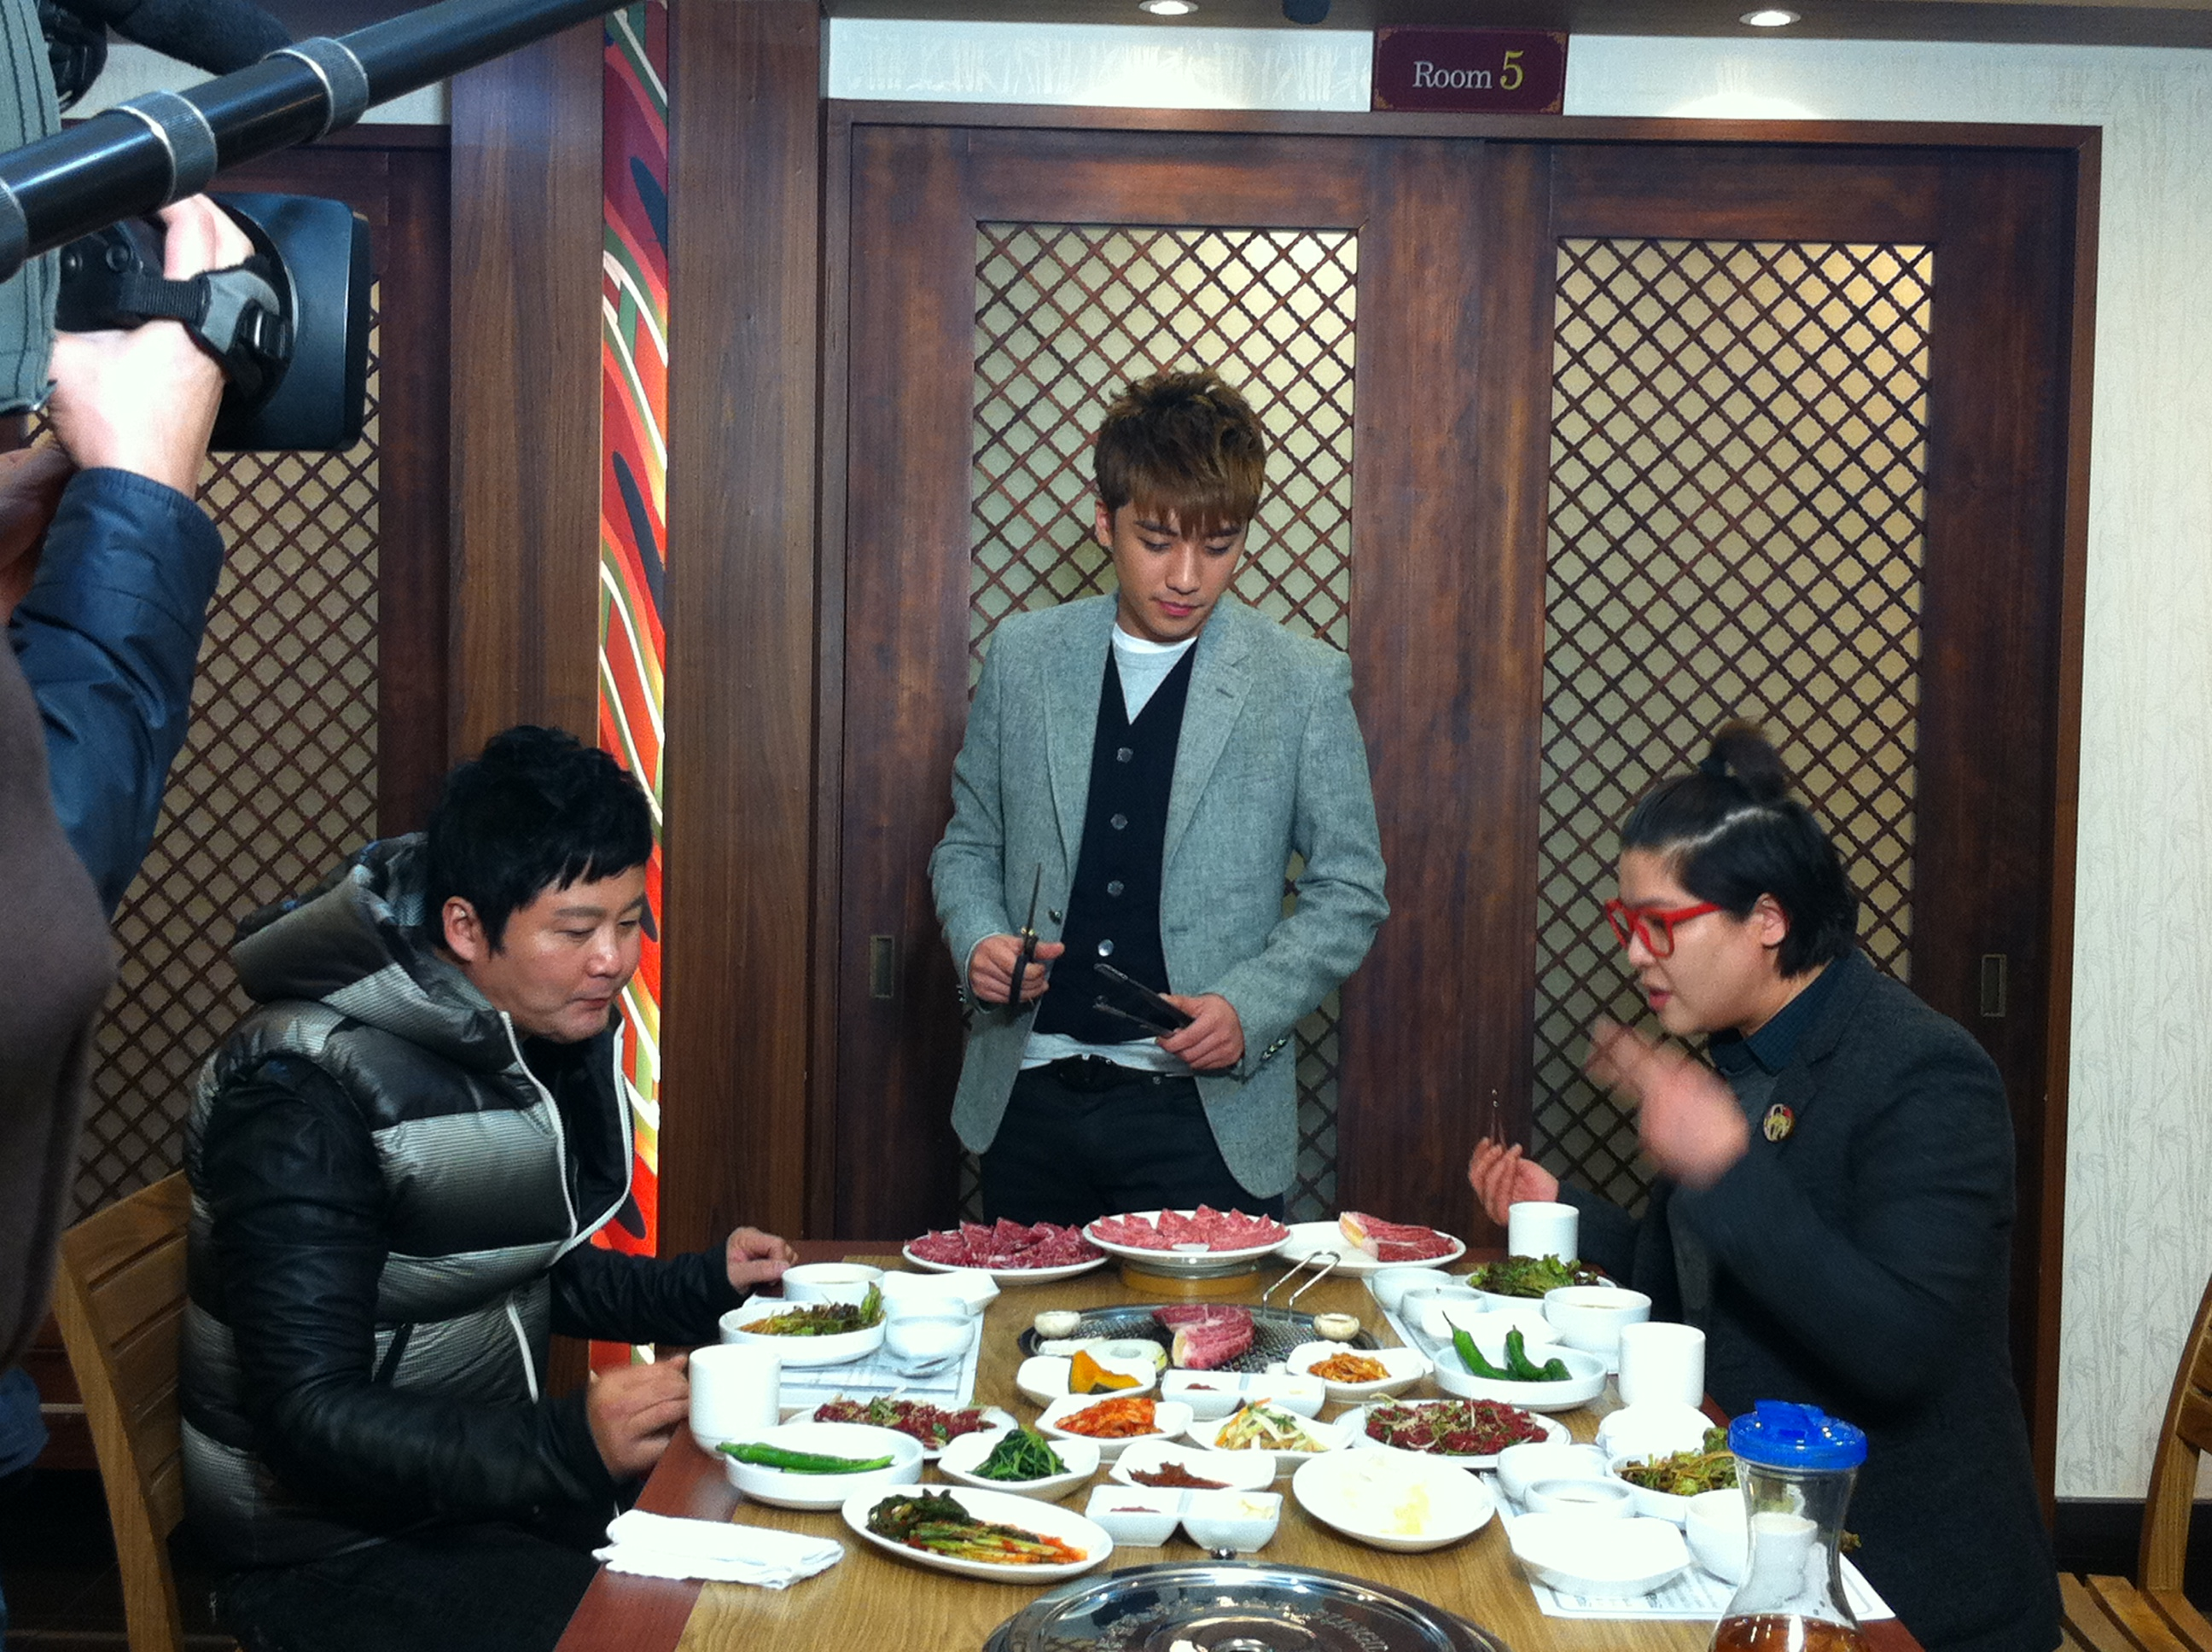 Seung Ri - tvN Taxi - Yeongcheon Younghwa Restaurant - 06feb2011 - 02.jpg